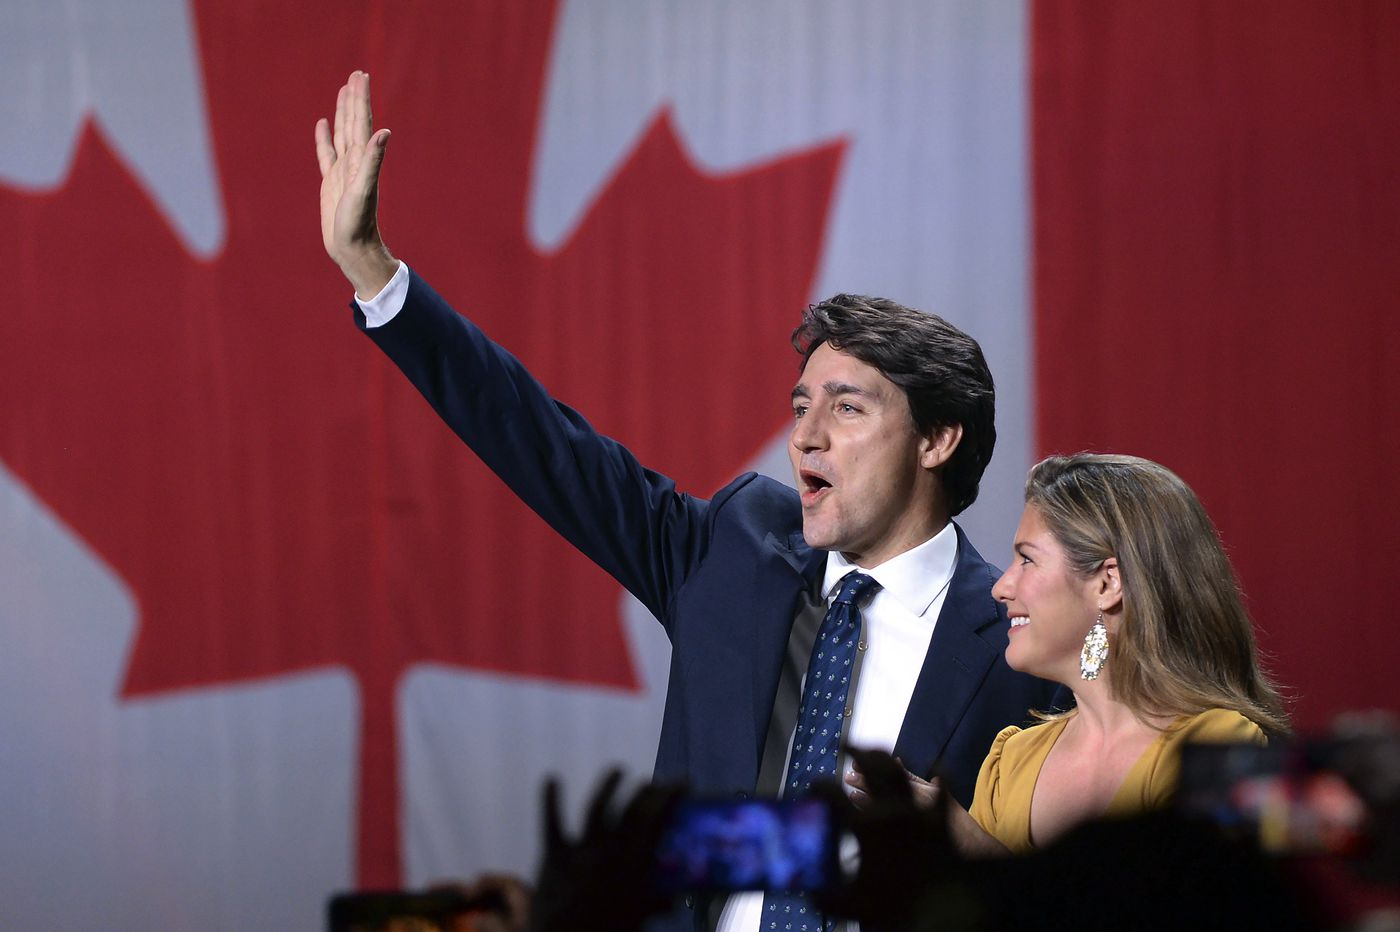 Canadian Prime Minister Justin Trudeau wins second term but loses majority